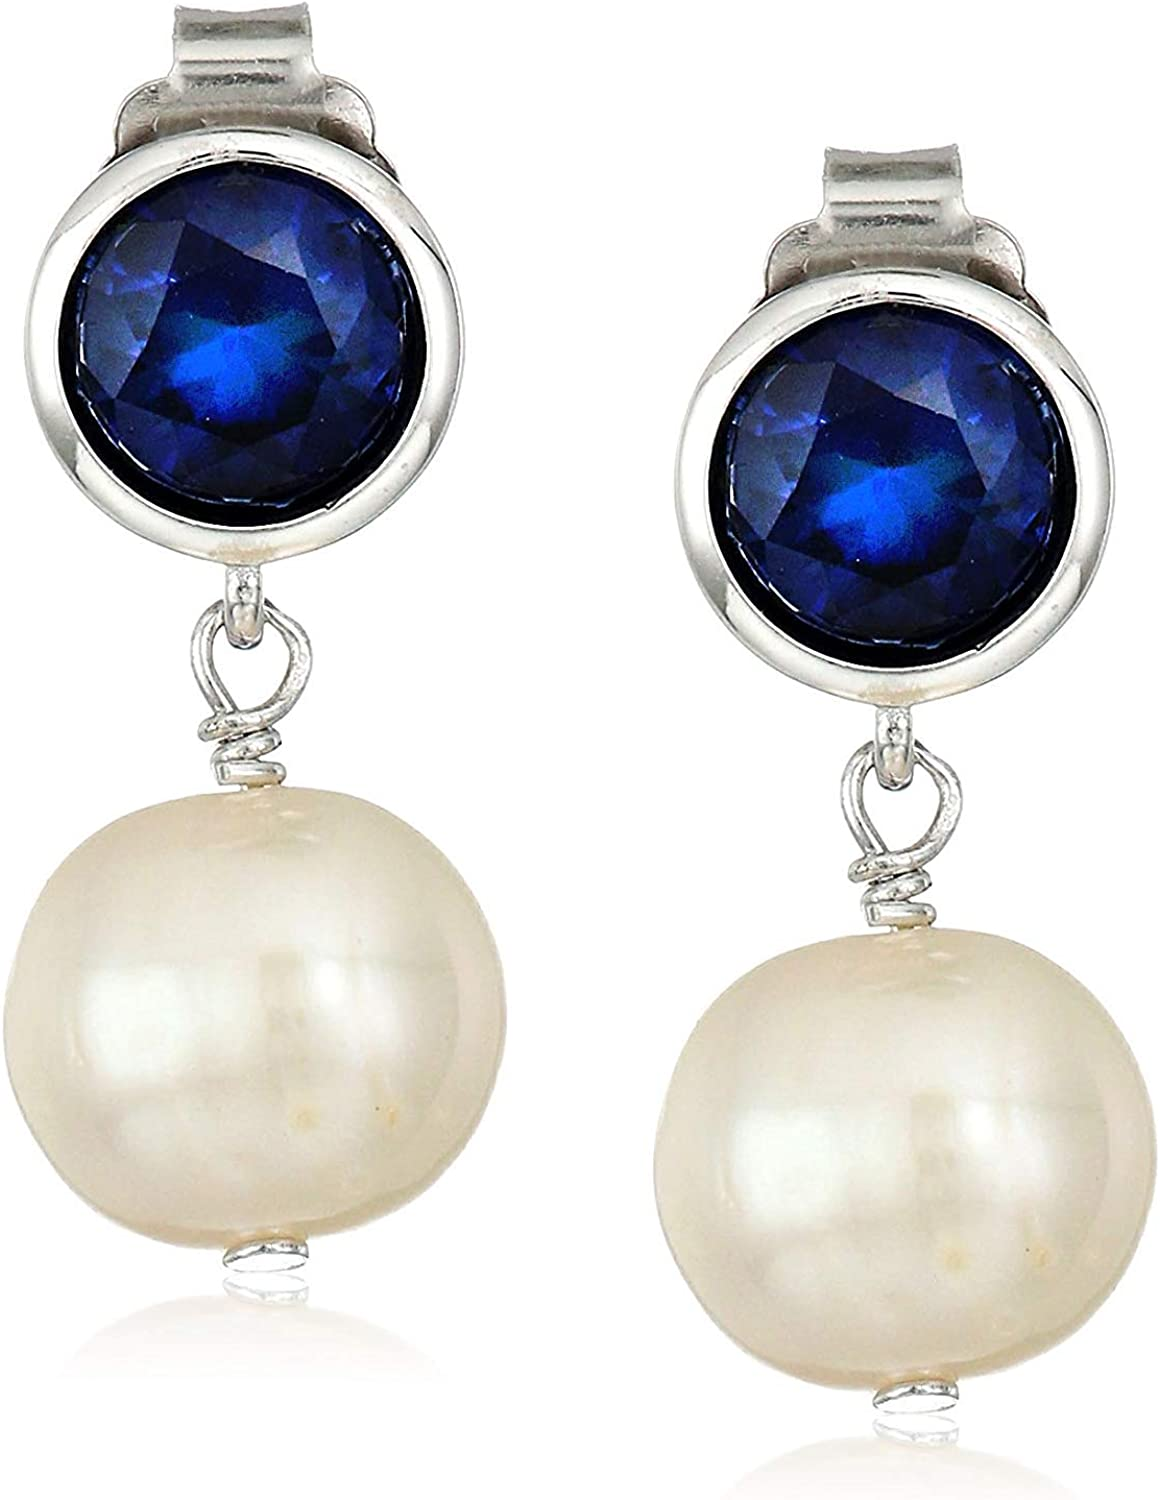 We OFFer at cheap prices 925 Year-end gift Sterling Silver Bezel-Set Gemstone 8mm Birthstone and White